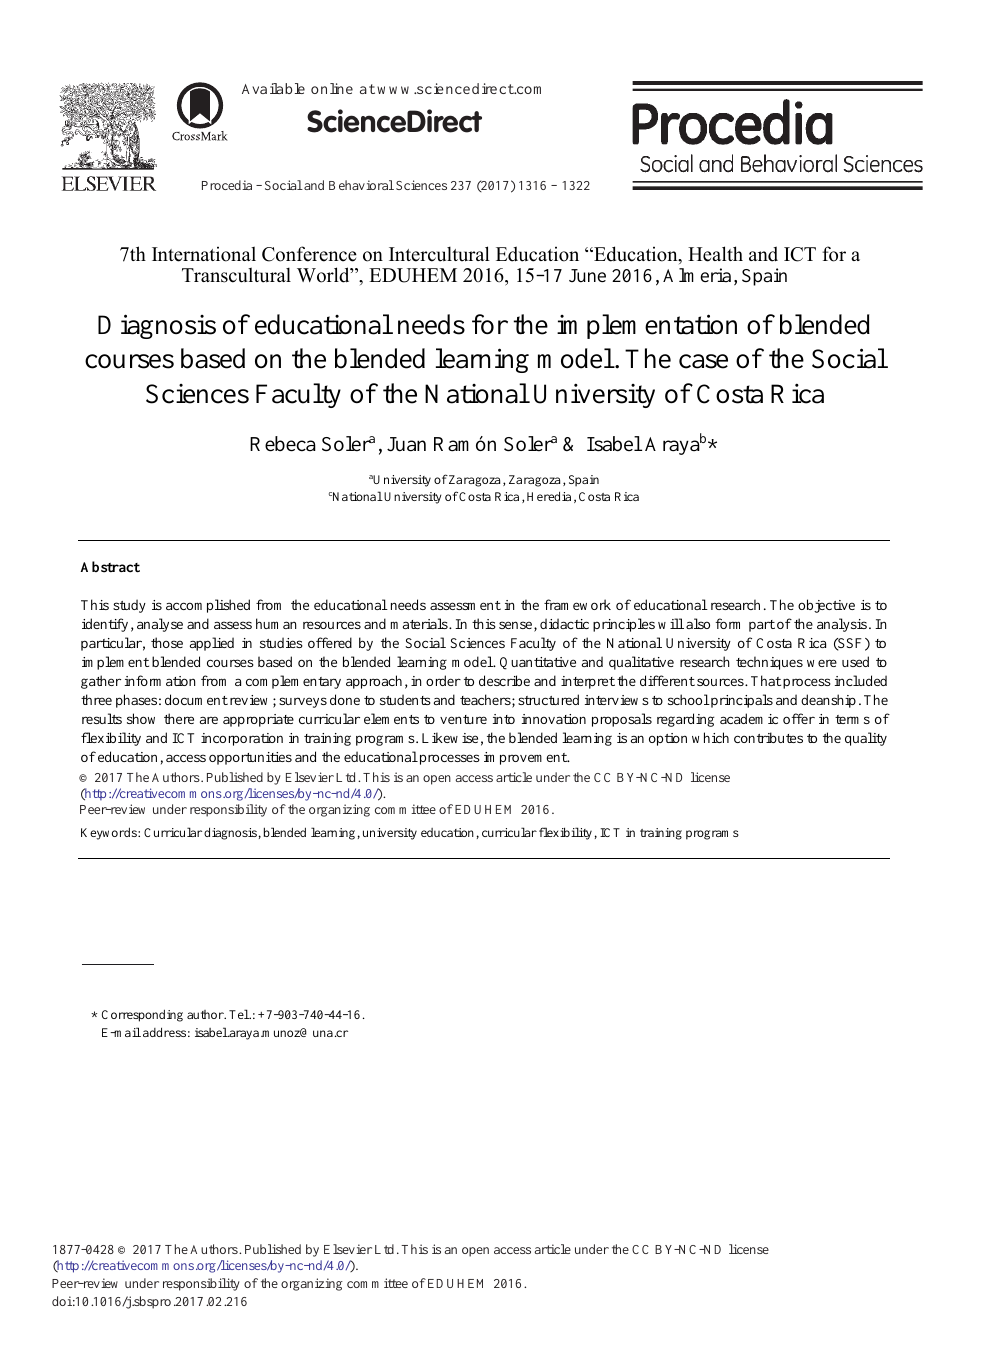 Diagnosis of Educational Needs for the Implementation of Blended ...